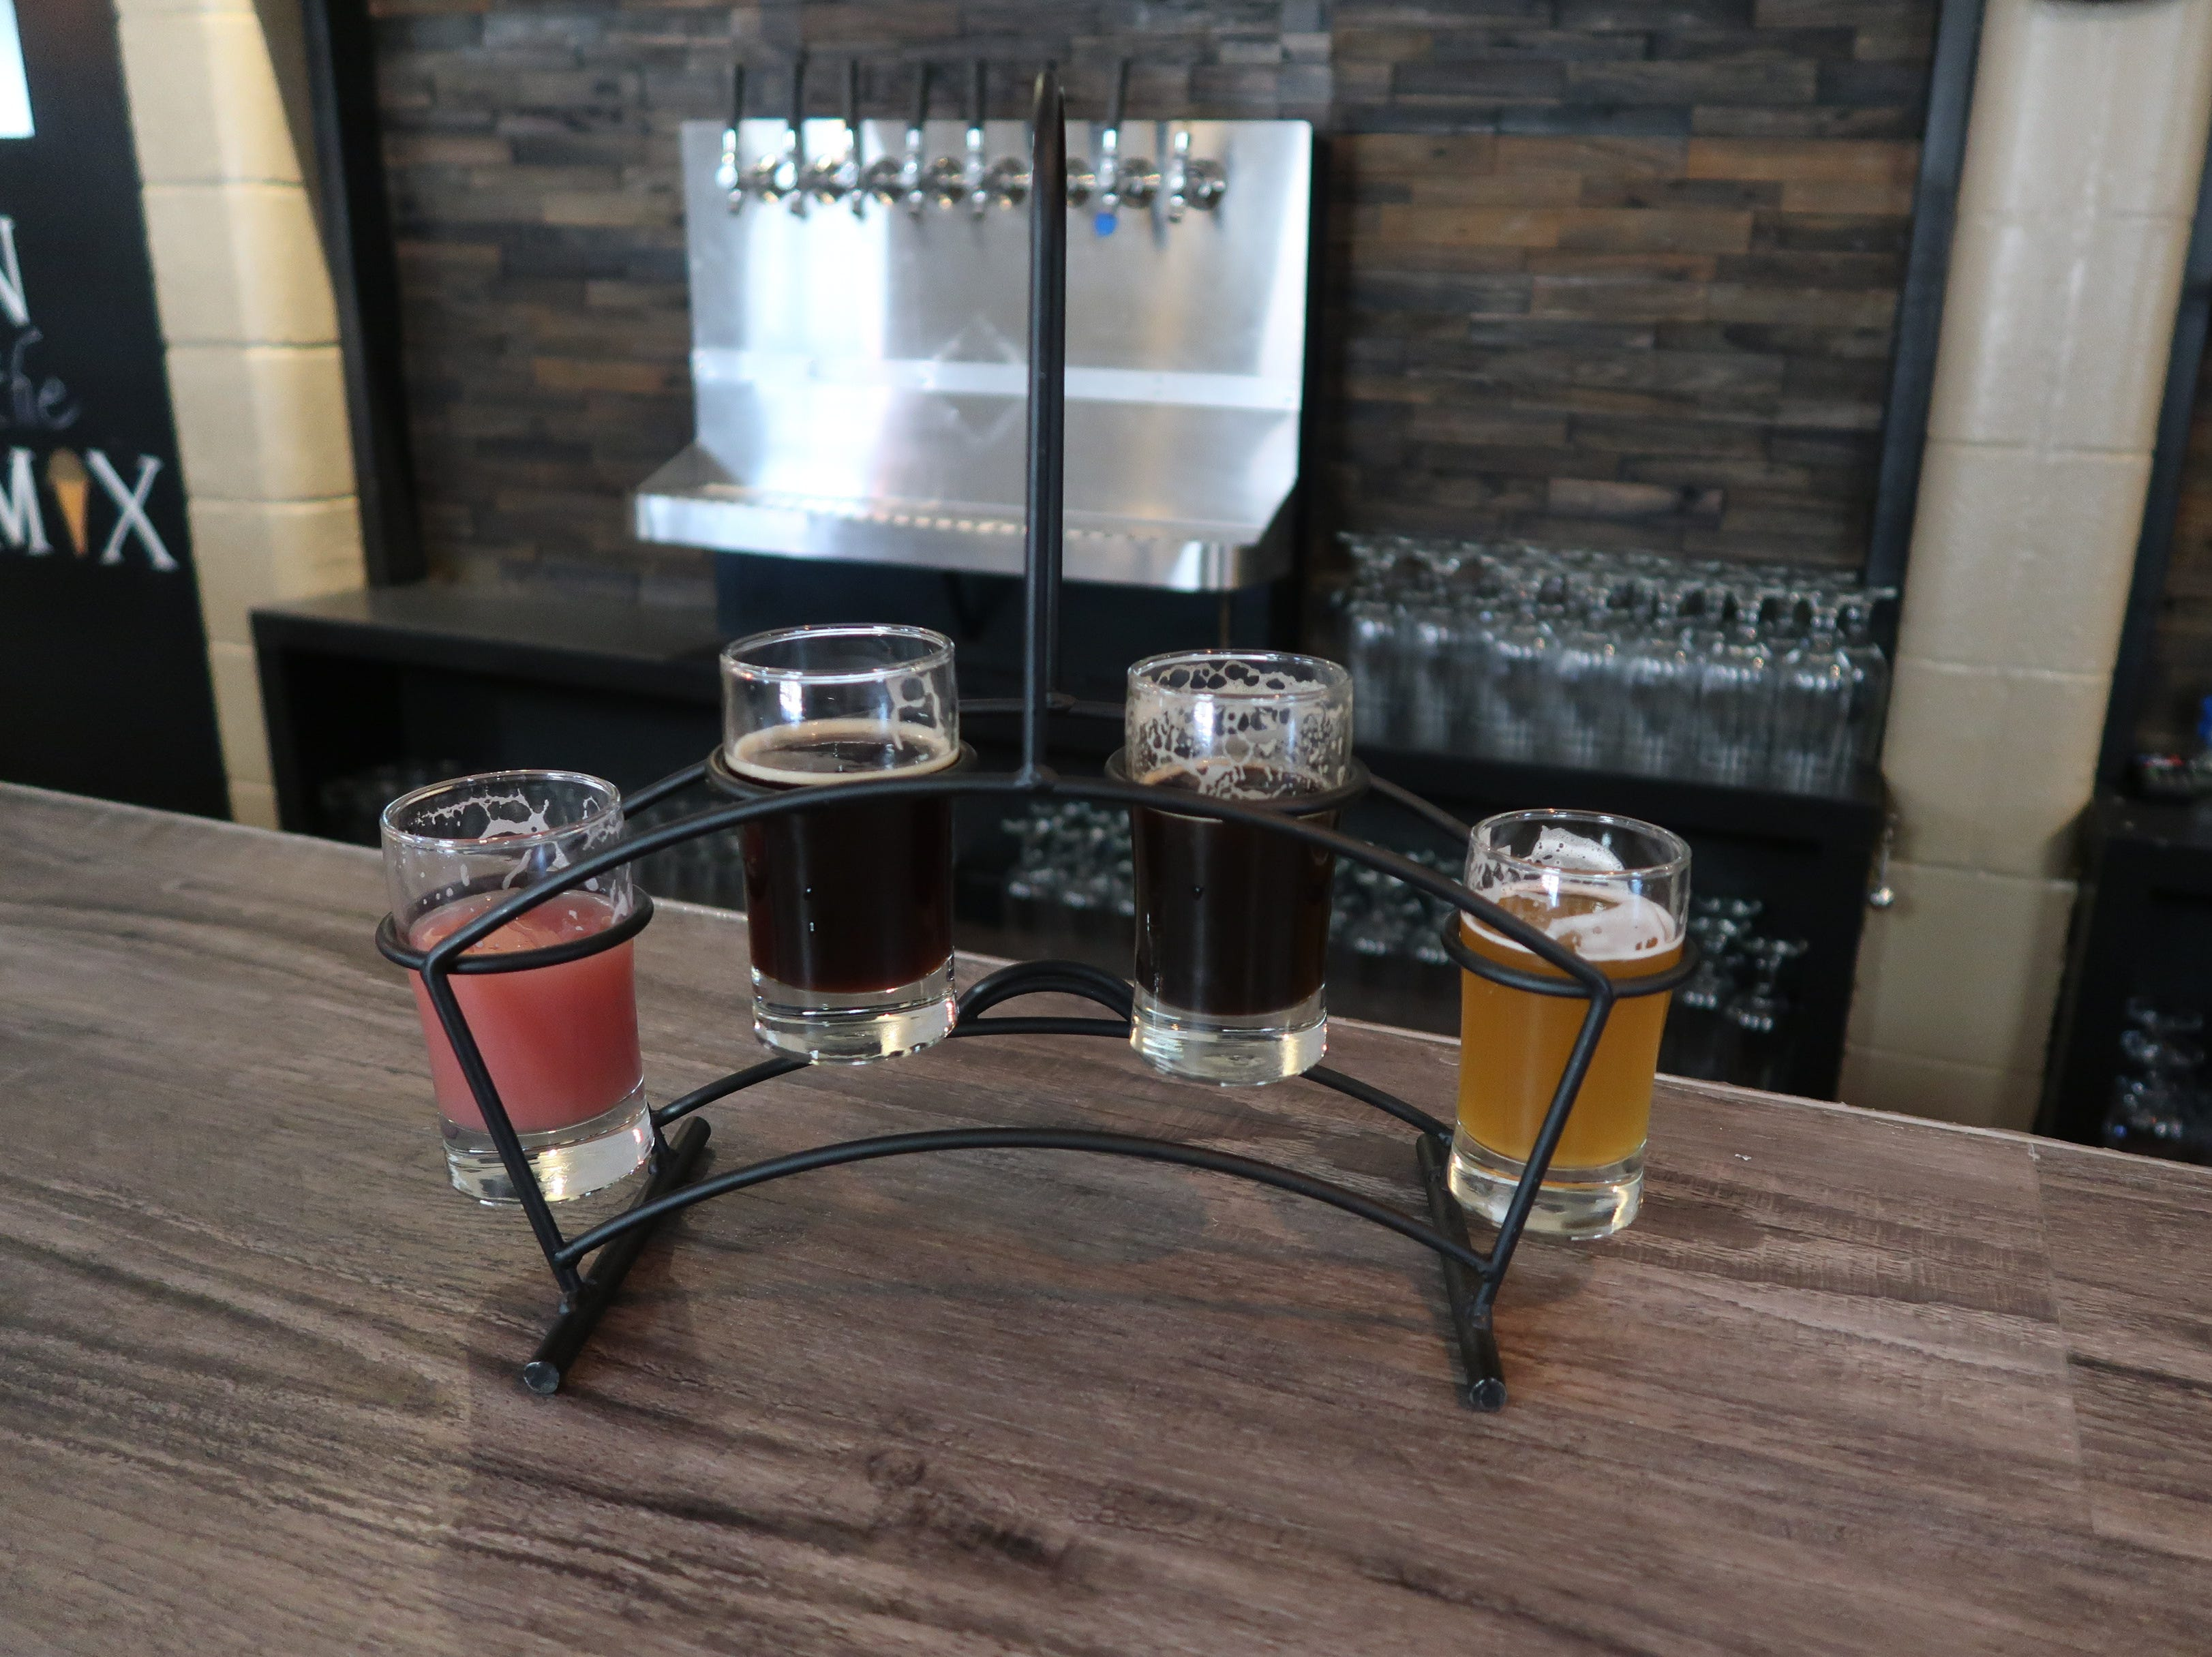 A colorful flight at In The Mix Brewing and Creamery in Barker, Niagara County.